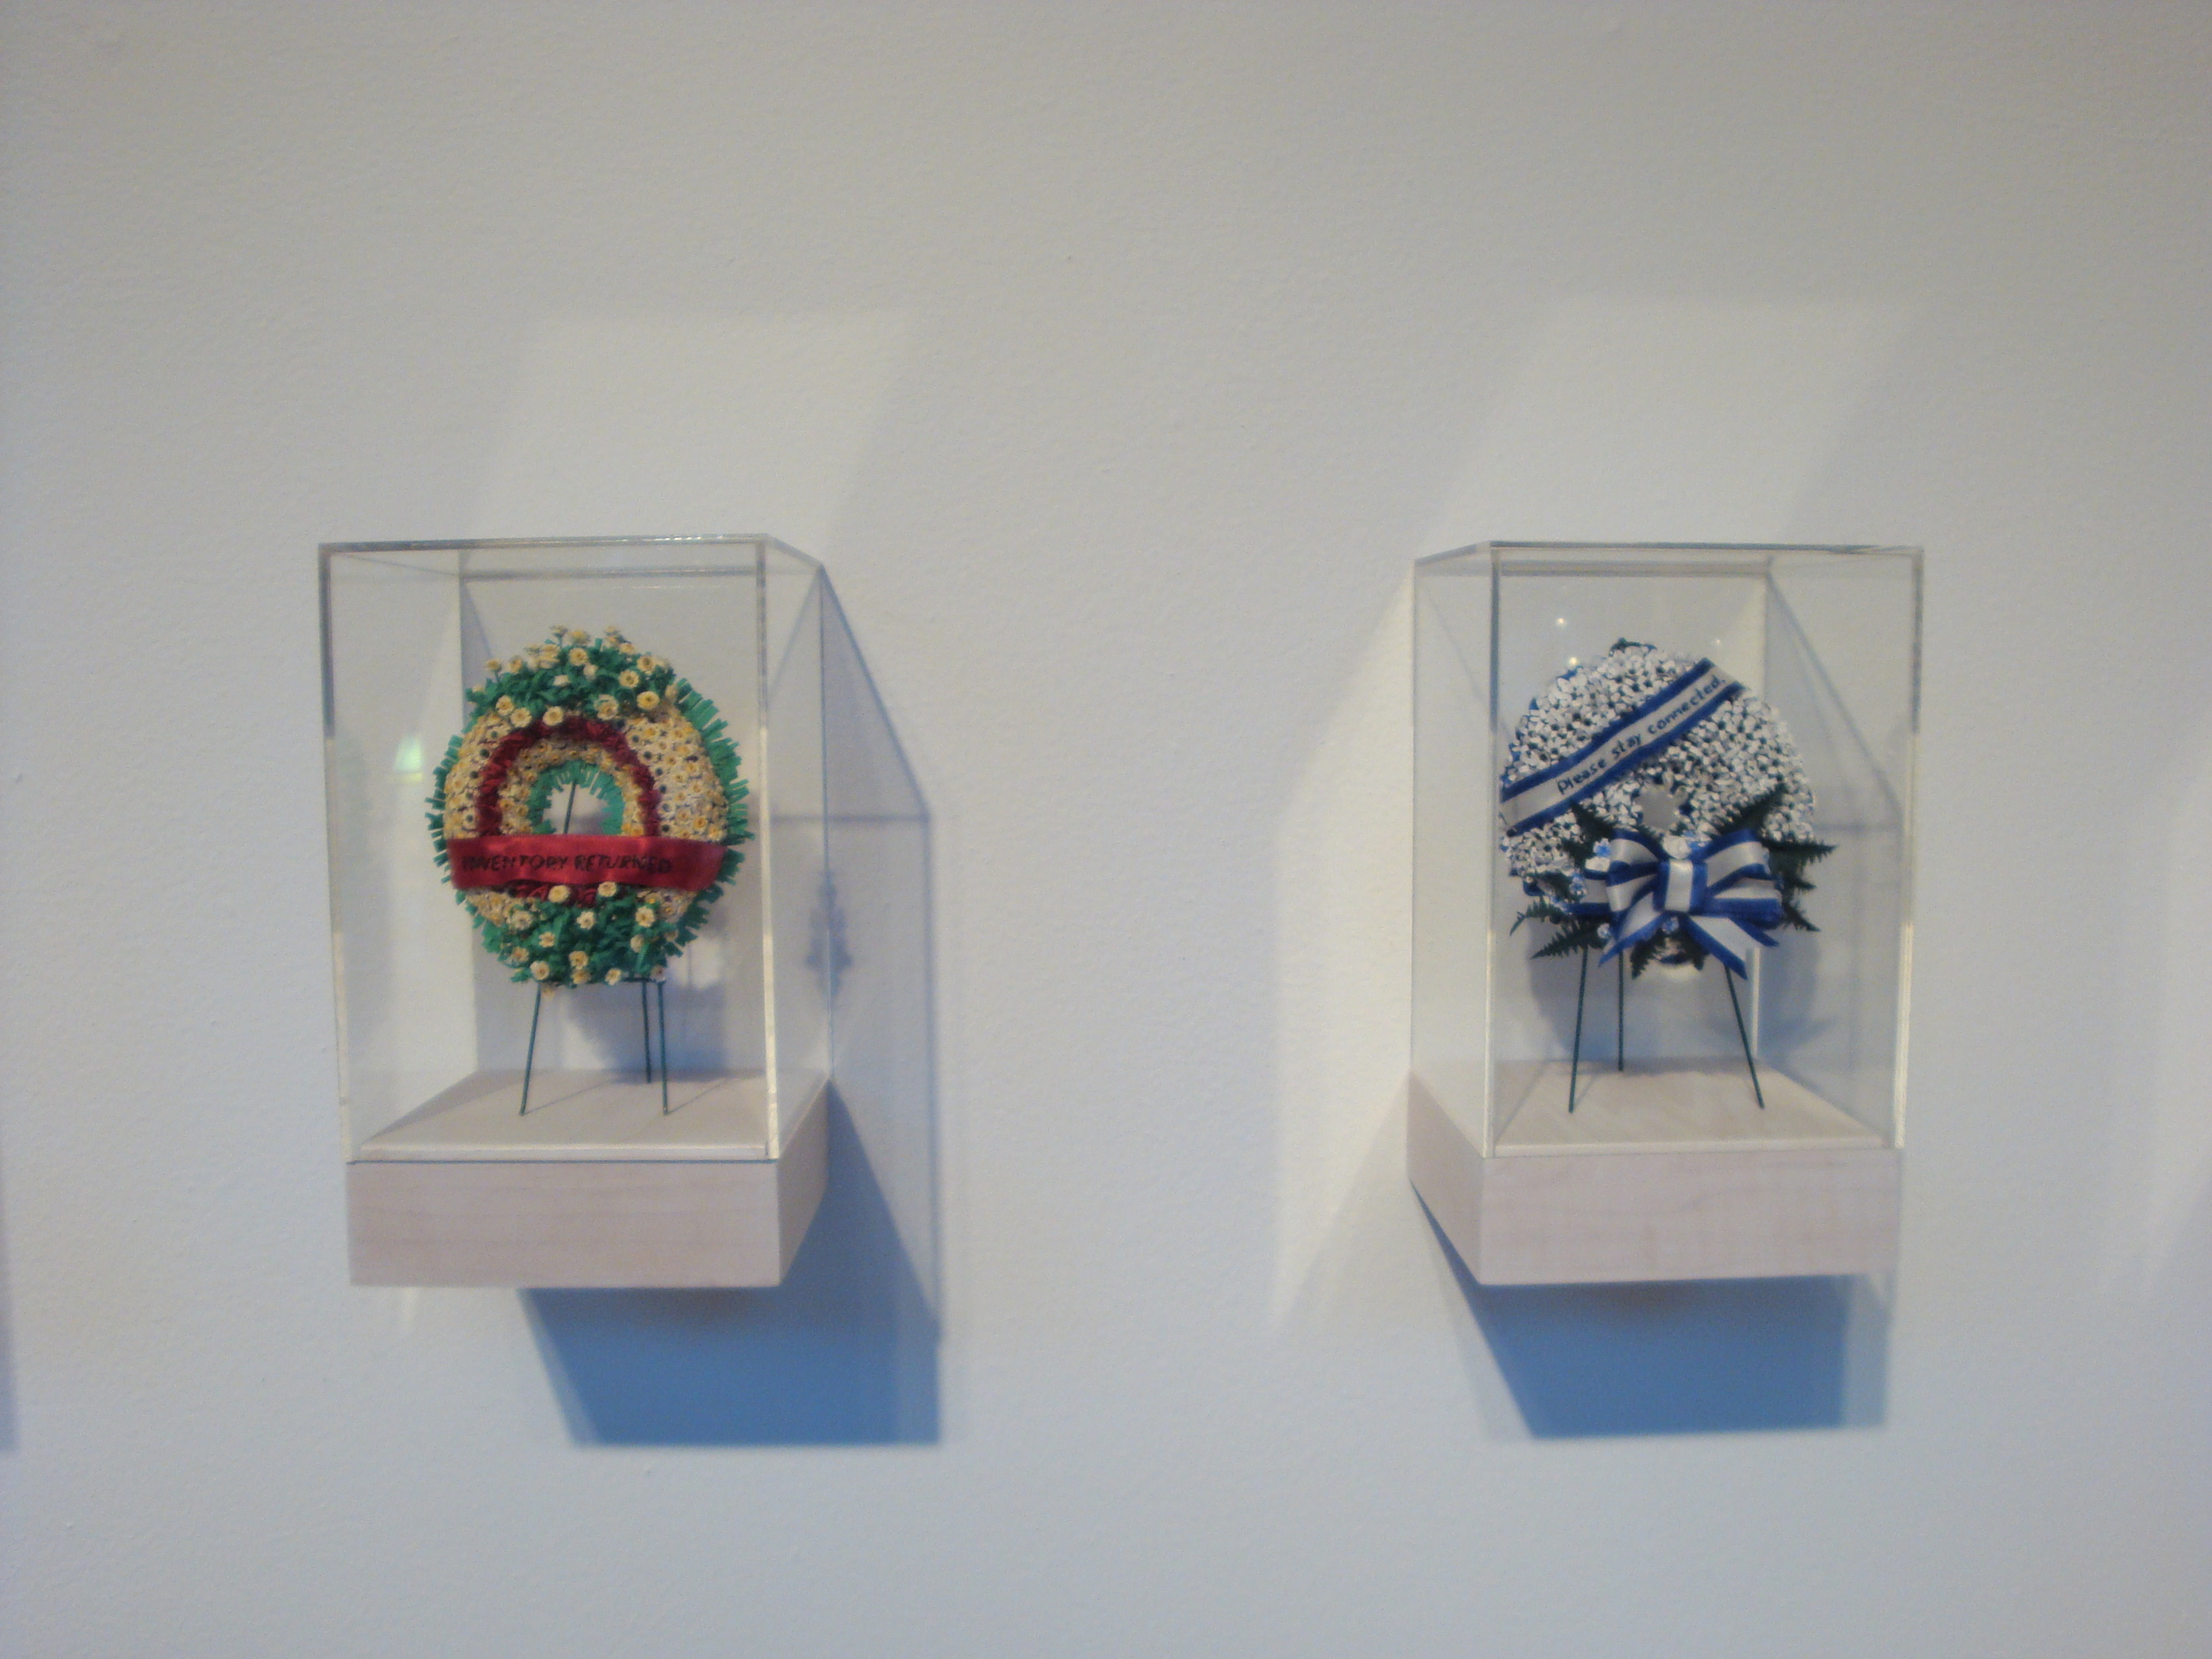 Rejection Wreaths (installation view)